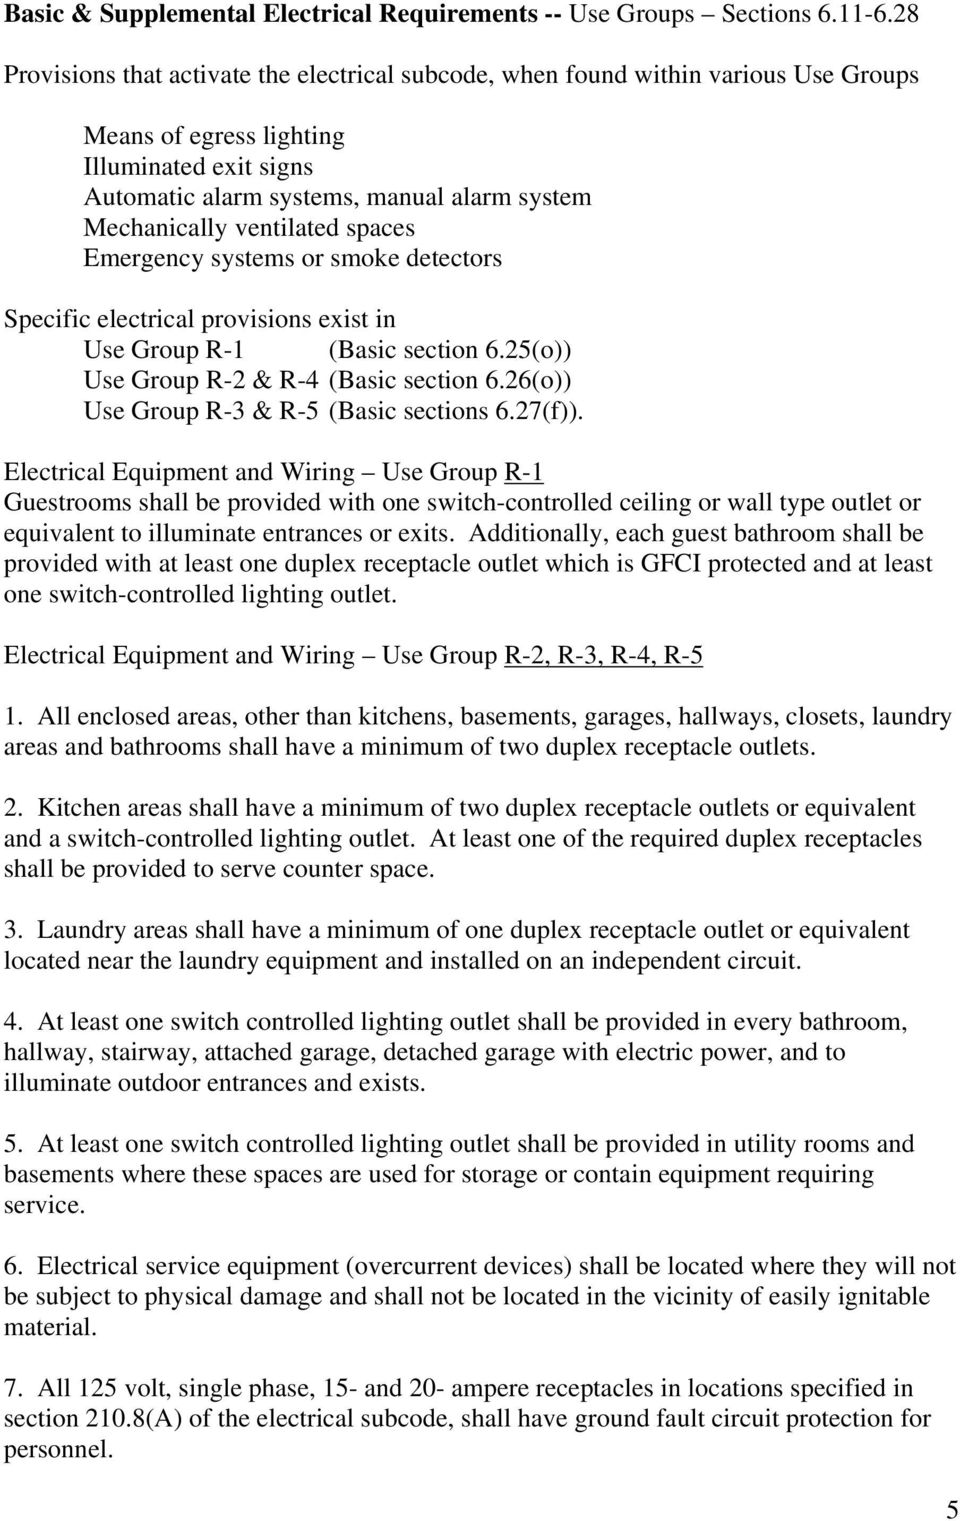 ventilated spaces Emergency systems or smoke detectors Specific electrical provisions exist in Use Group R-1 (Basic section 6.25(o)) Use Group R-2 & R-4 (Basic section 6.